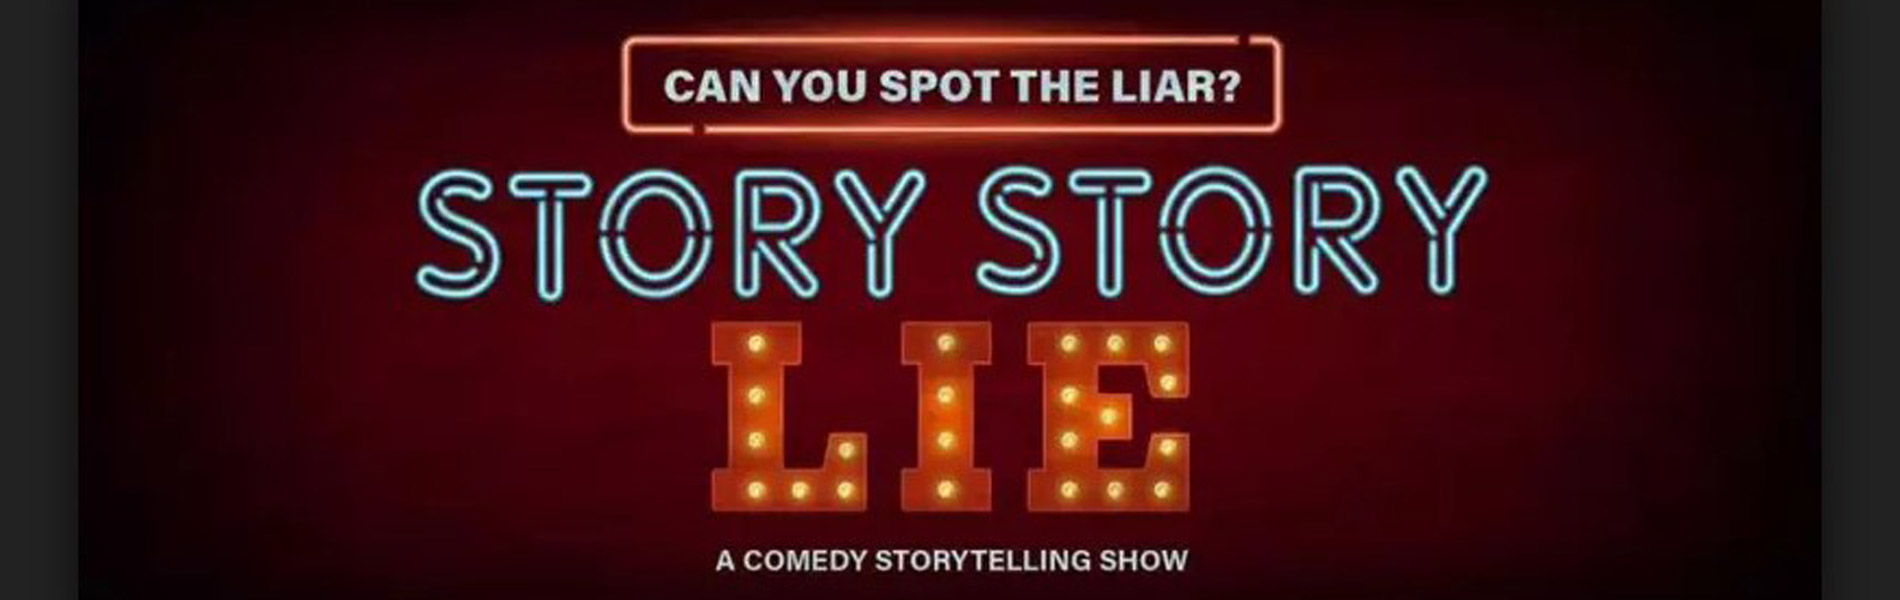 Story Story Drive and Story Story Lie